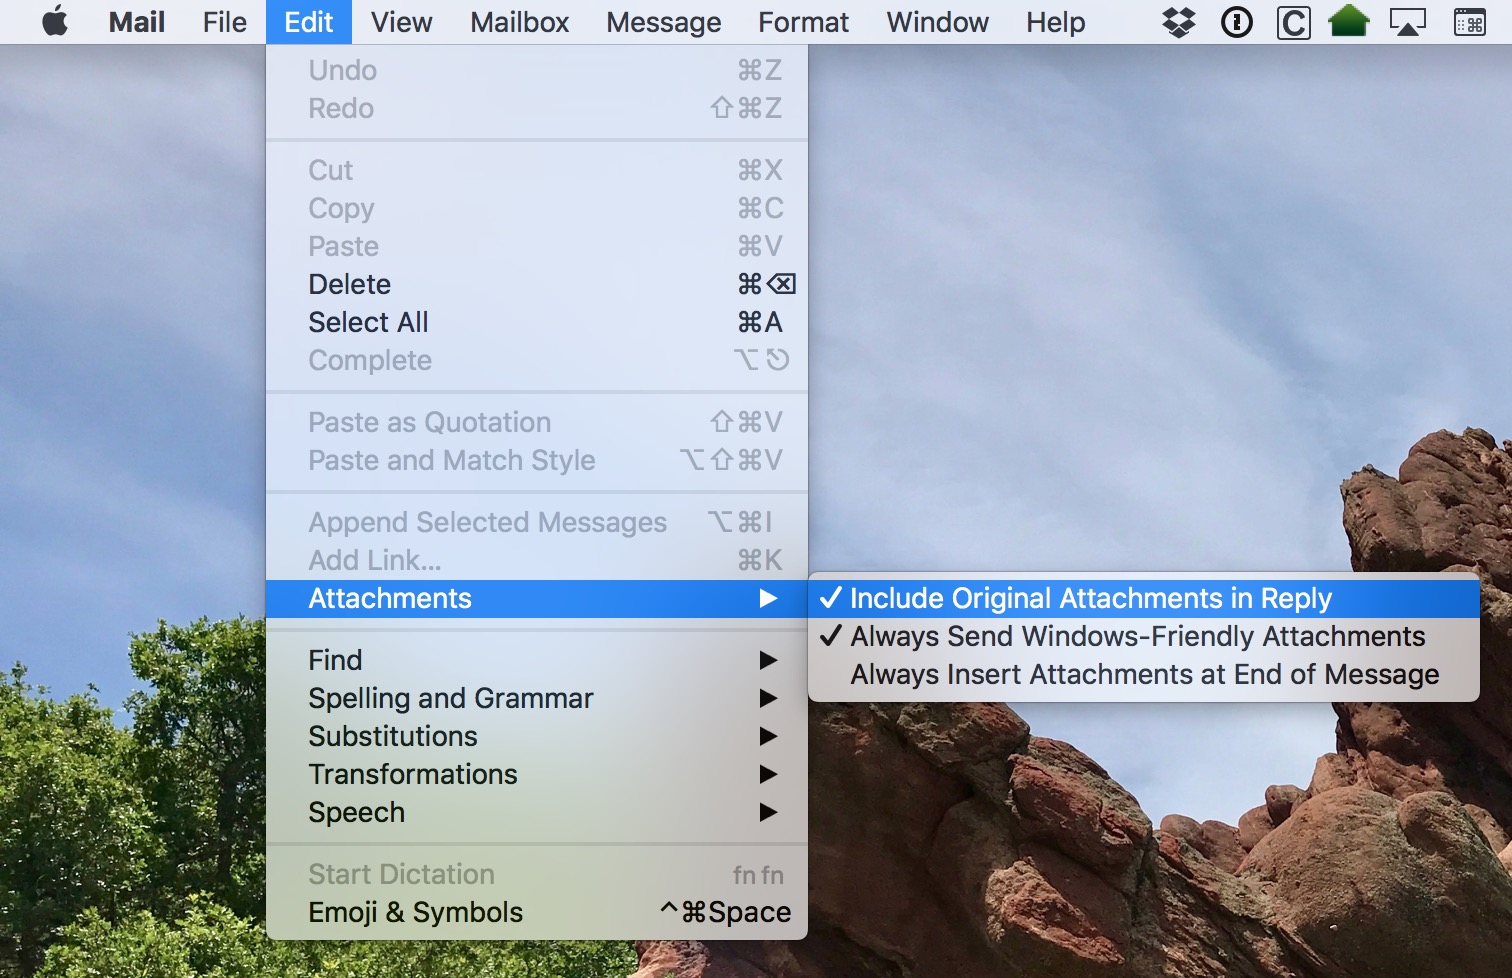 The Mail Edit Menu lets you include attachments in replies as a default